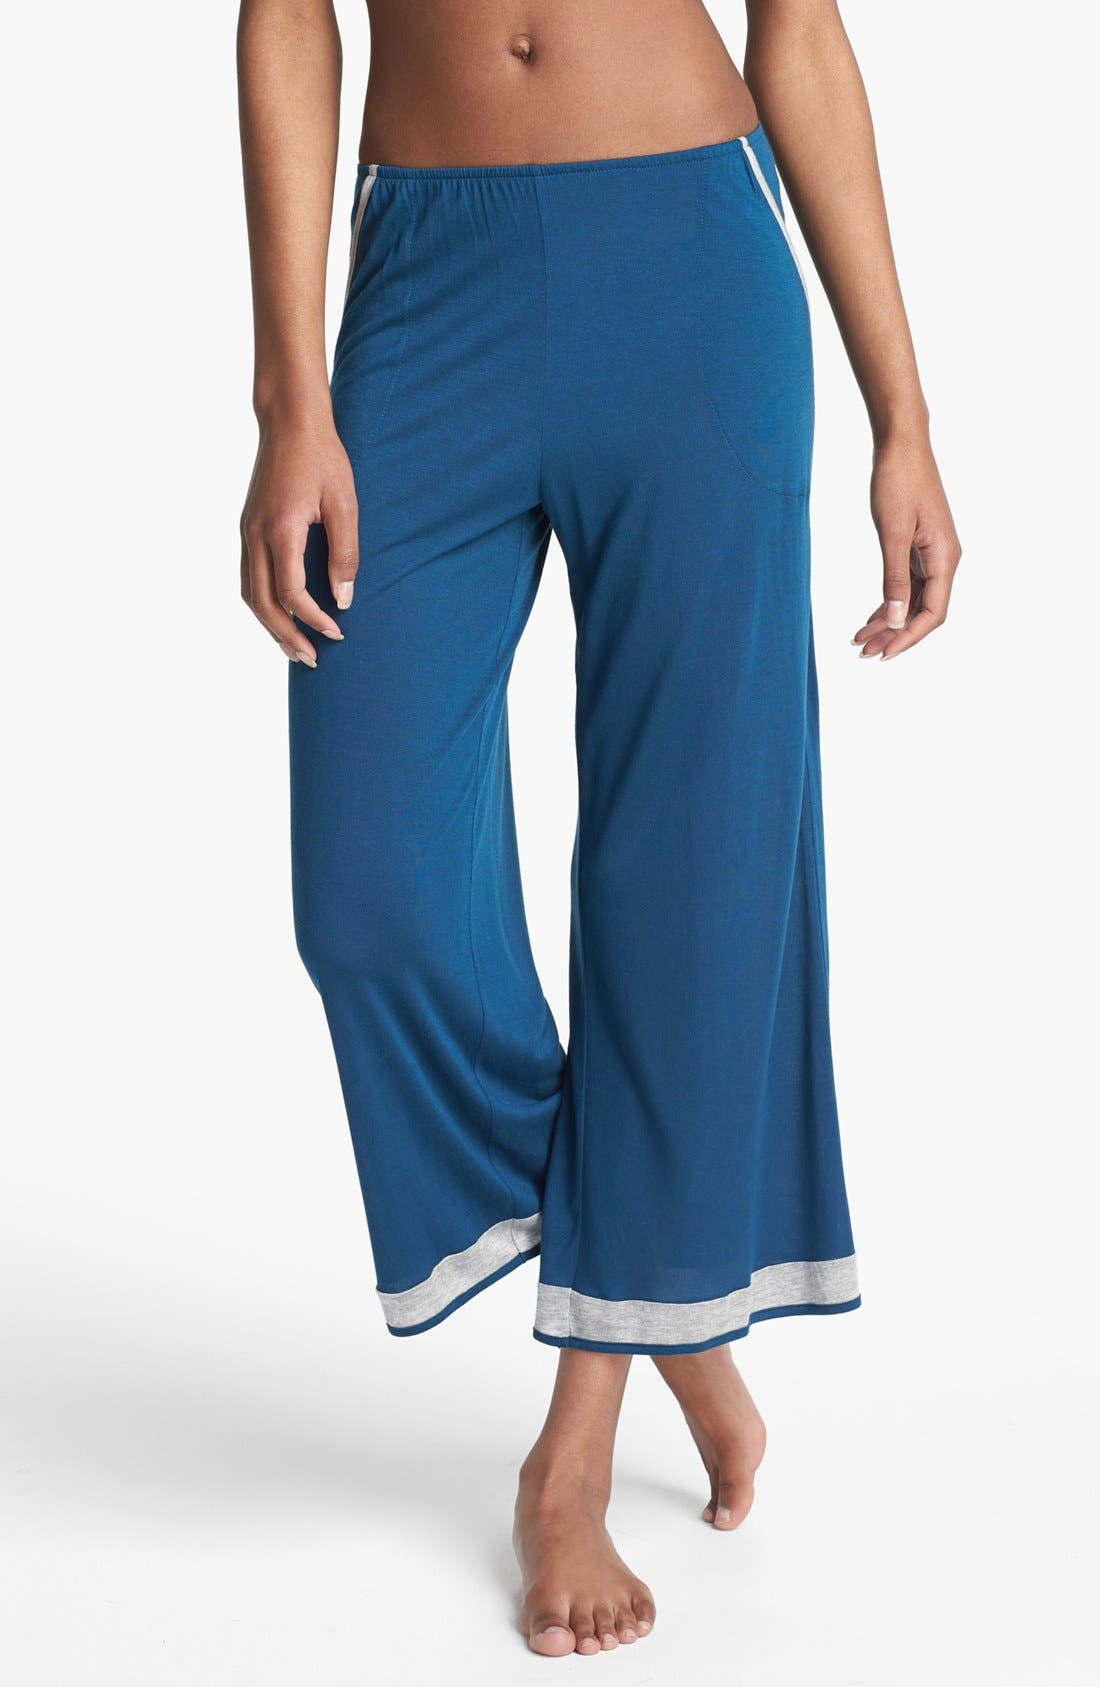 Alternate Image 1 Selected - Only Hearts 'Venice Beach' Crop Lounge Pants